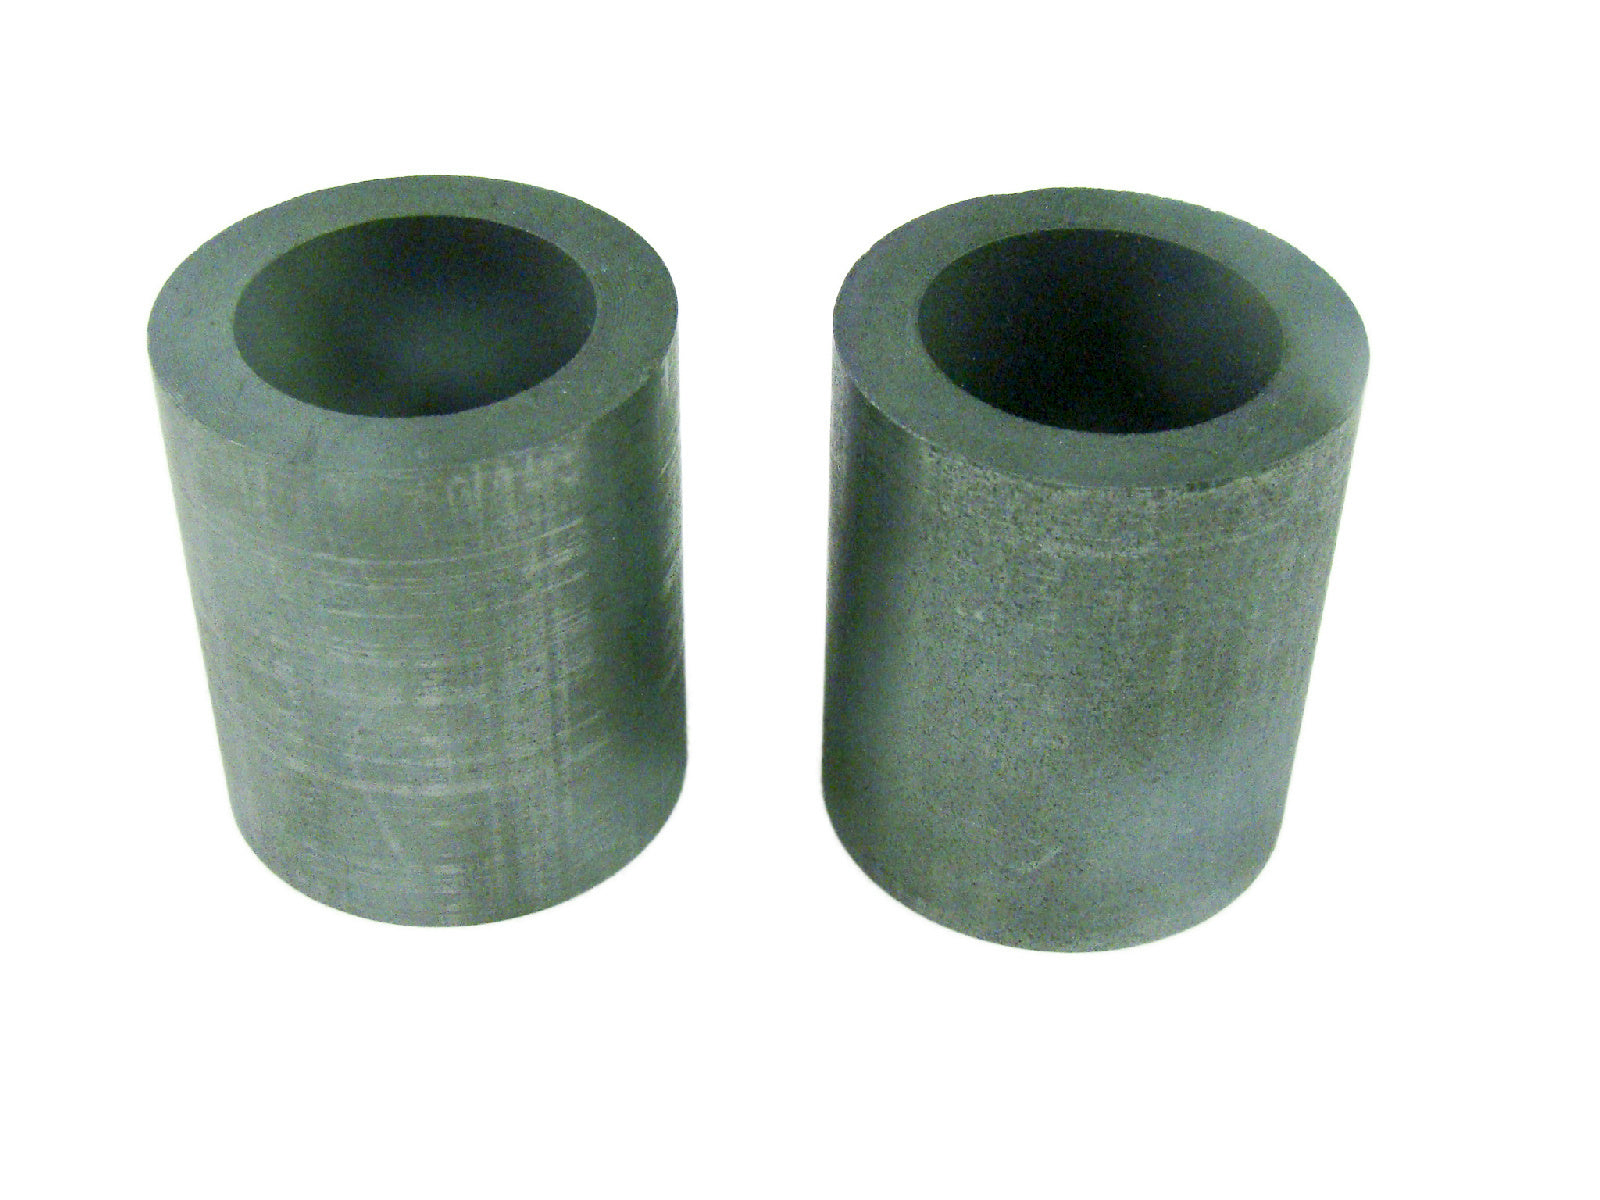 "Lot of 2 Graphite 6 oz Crucibles for Mini Propane Furnace-1-1/2"" W x 1-3/4"" Tall"